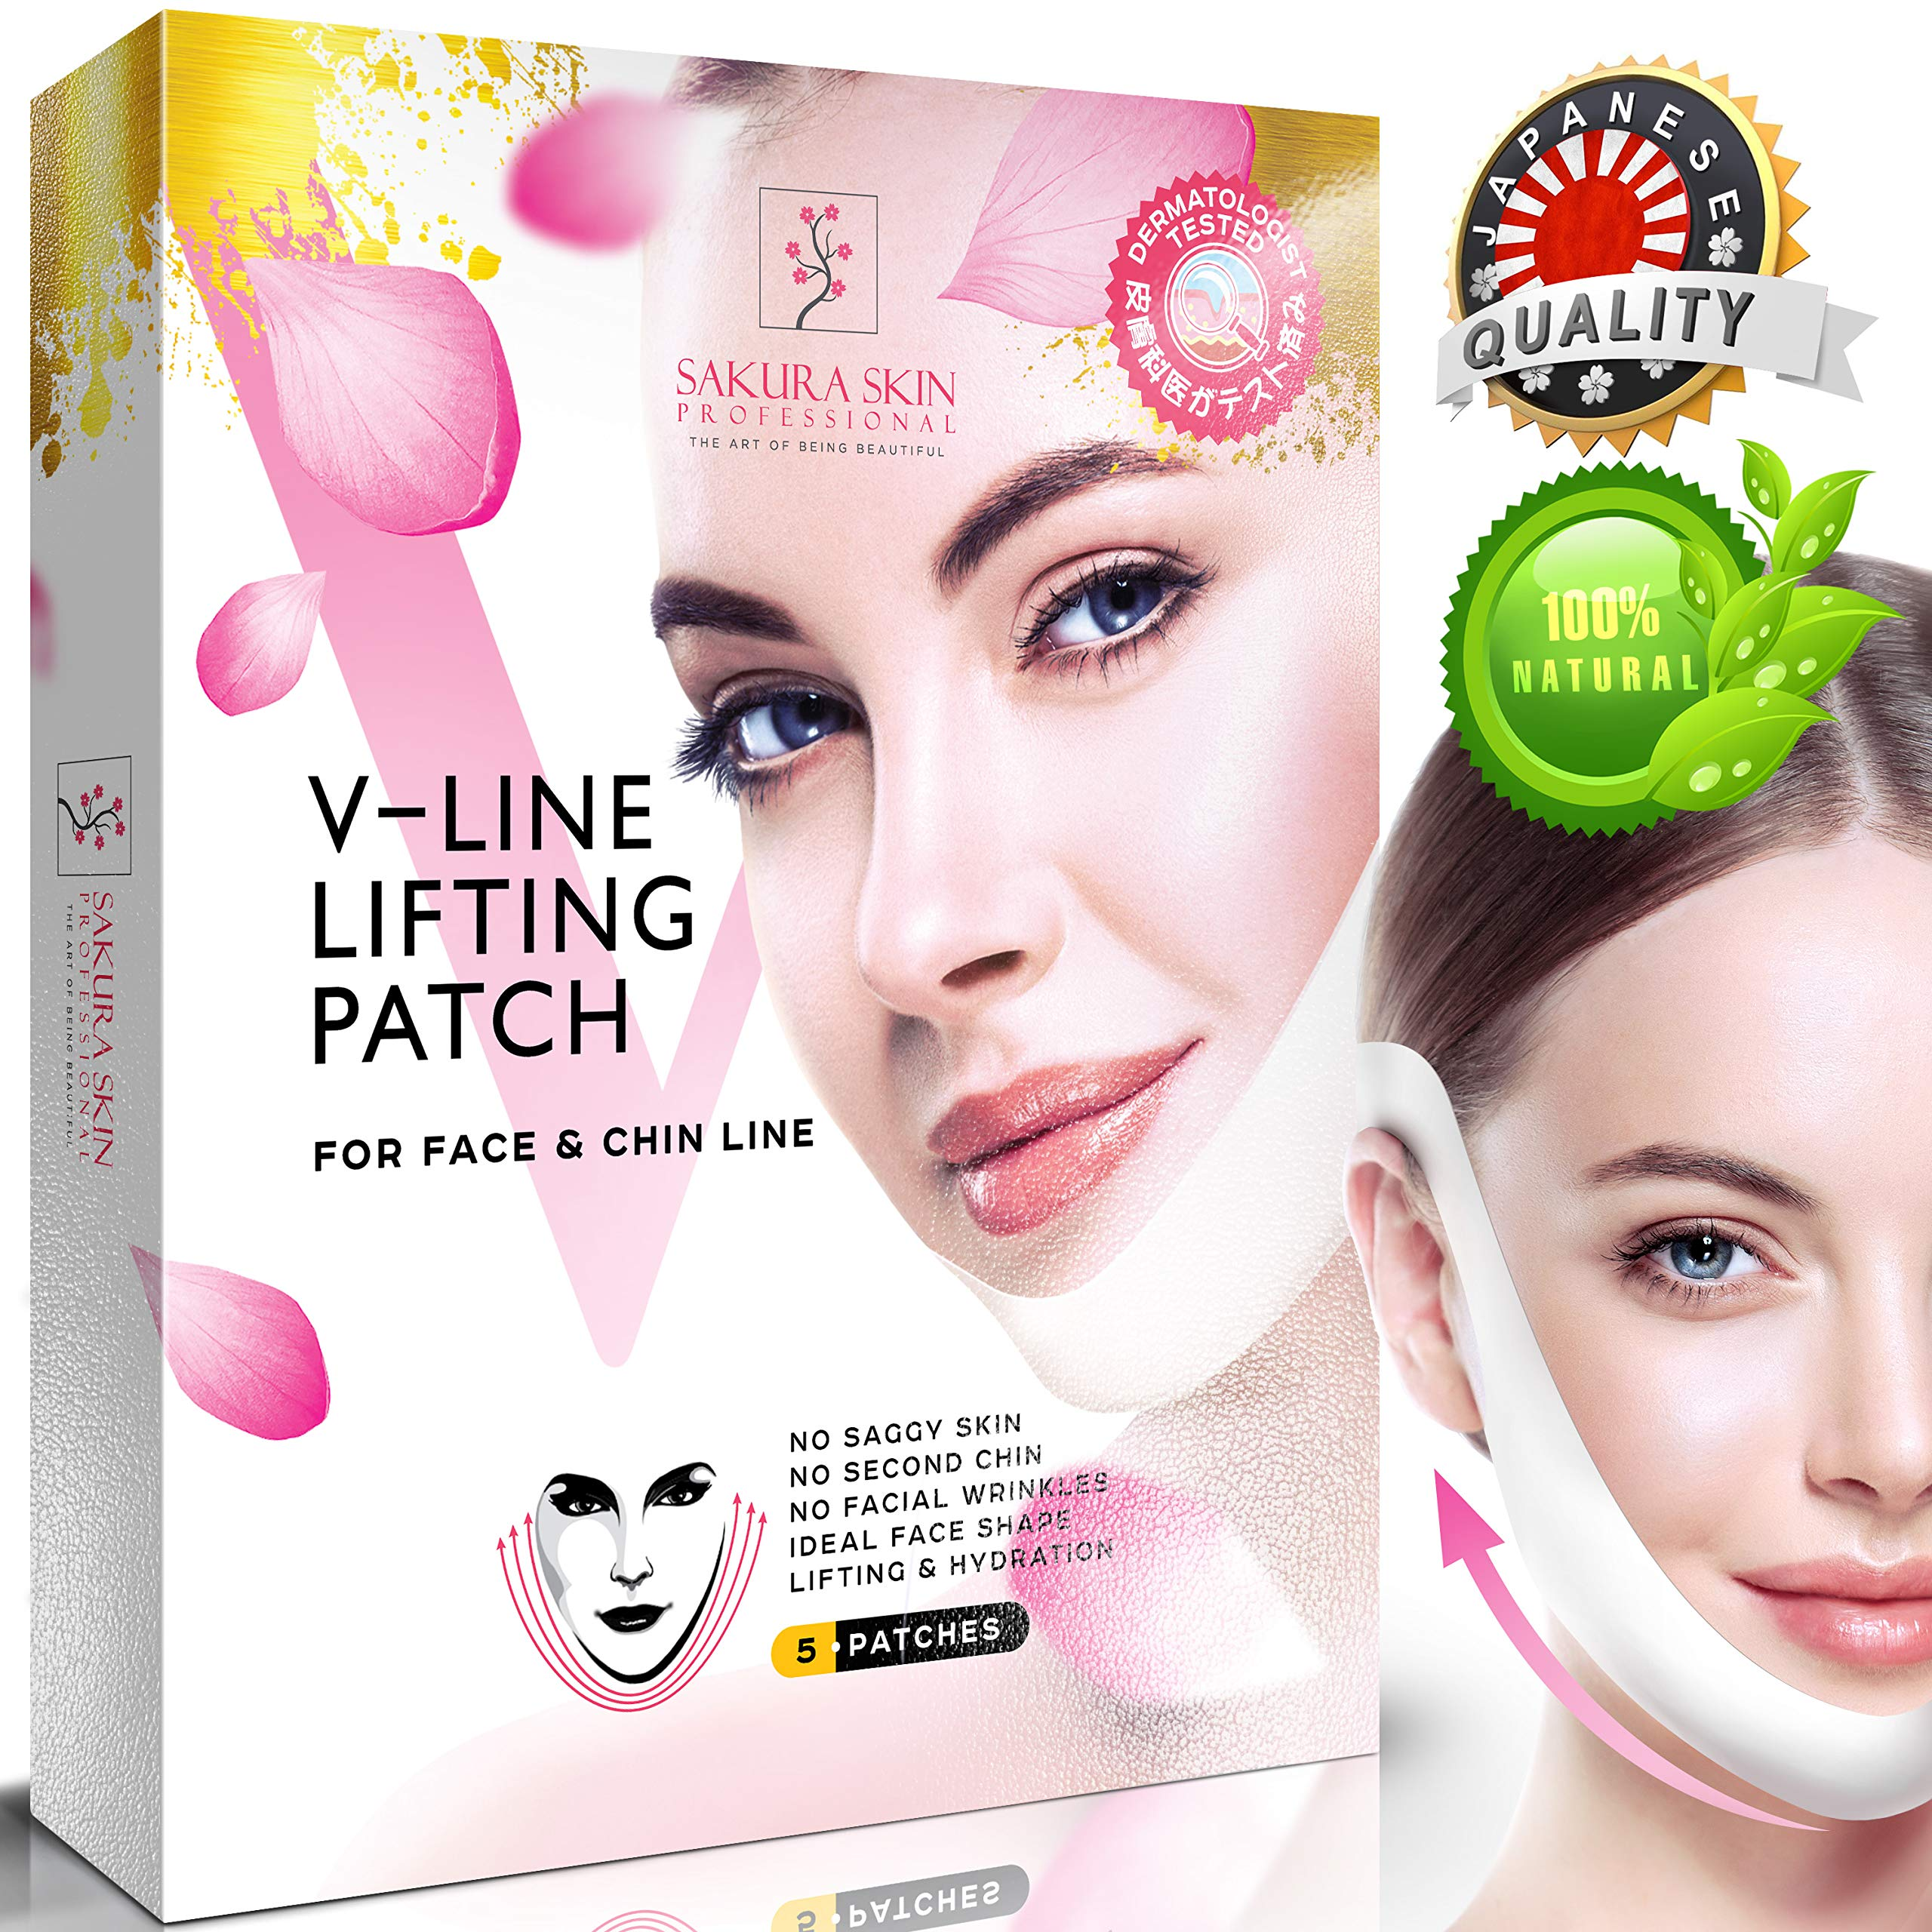 V Line Mask Neck Mask Face Lift V Lifting Chin Up Patch Double Chin Reducer Neck Lift V Up Contour Tightening Firming Moisturizing Кorean Сollagen Chin Mask V Shape Face Lifting V Zone Mask Tape